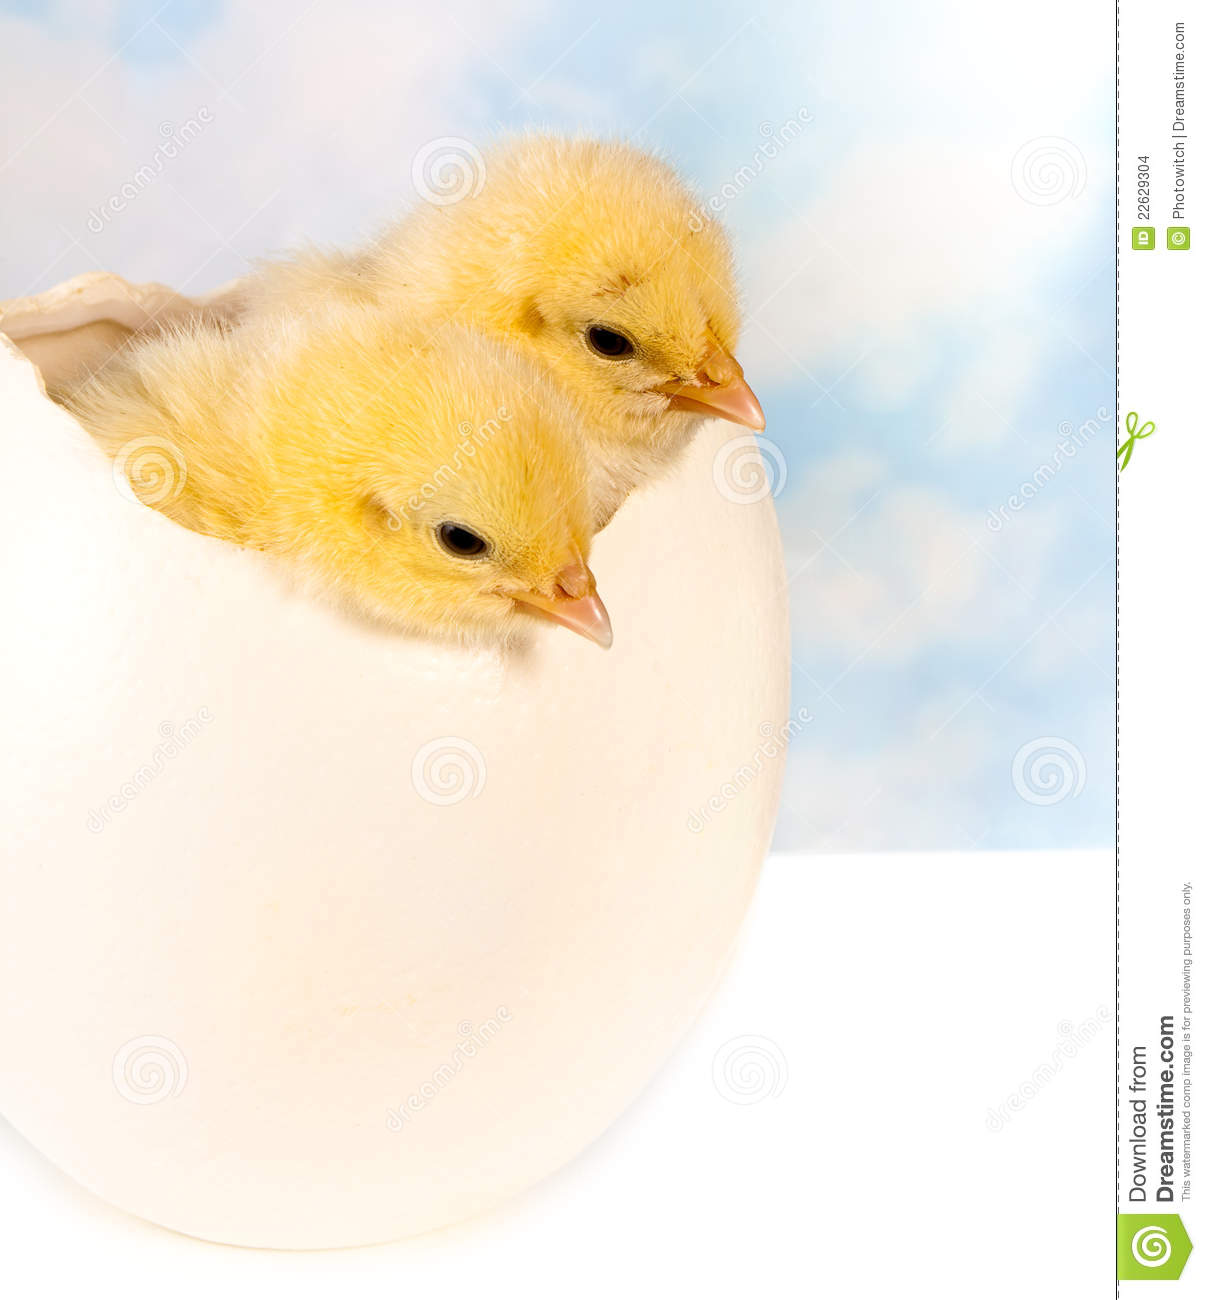 twin chicks in big egg stock photo. image of twin, tiny - 22629304